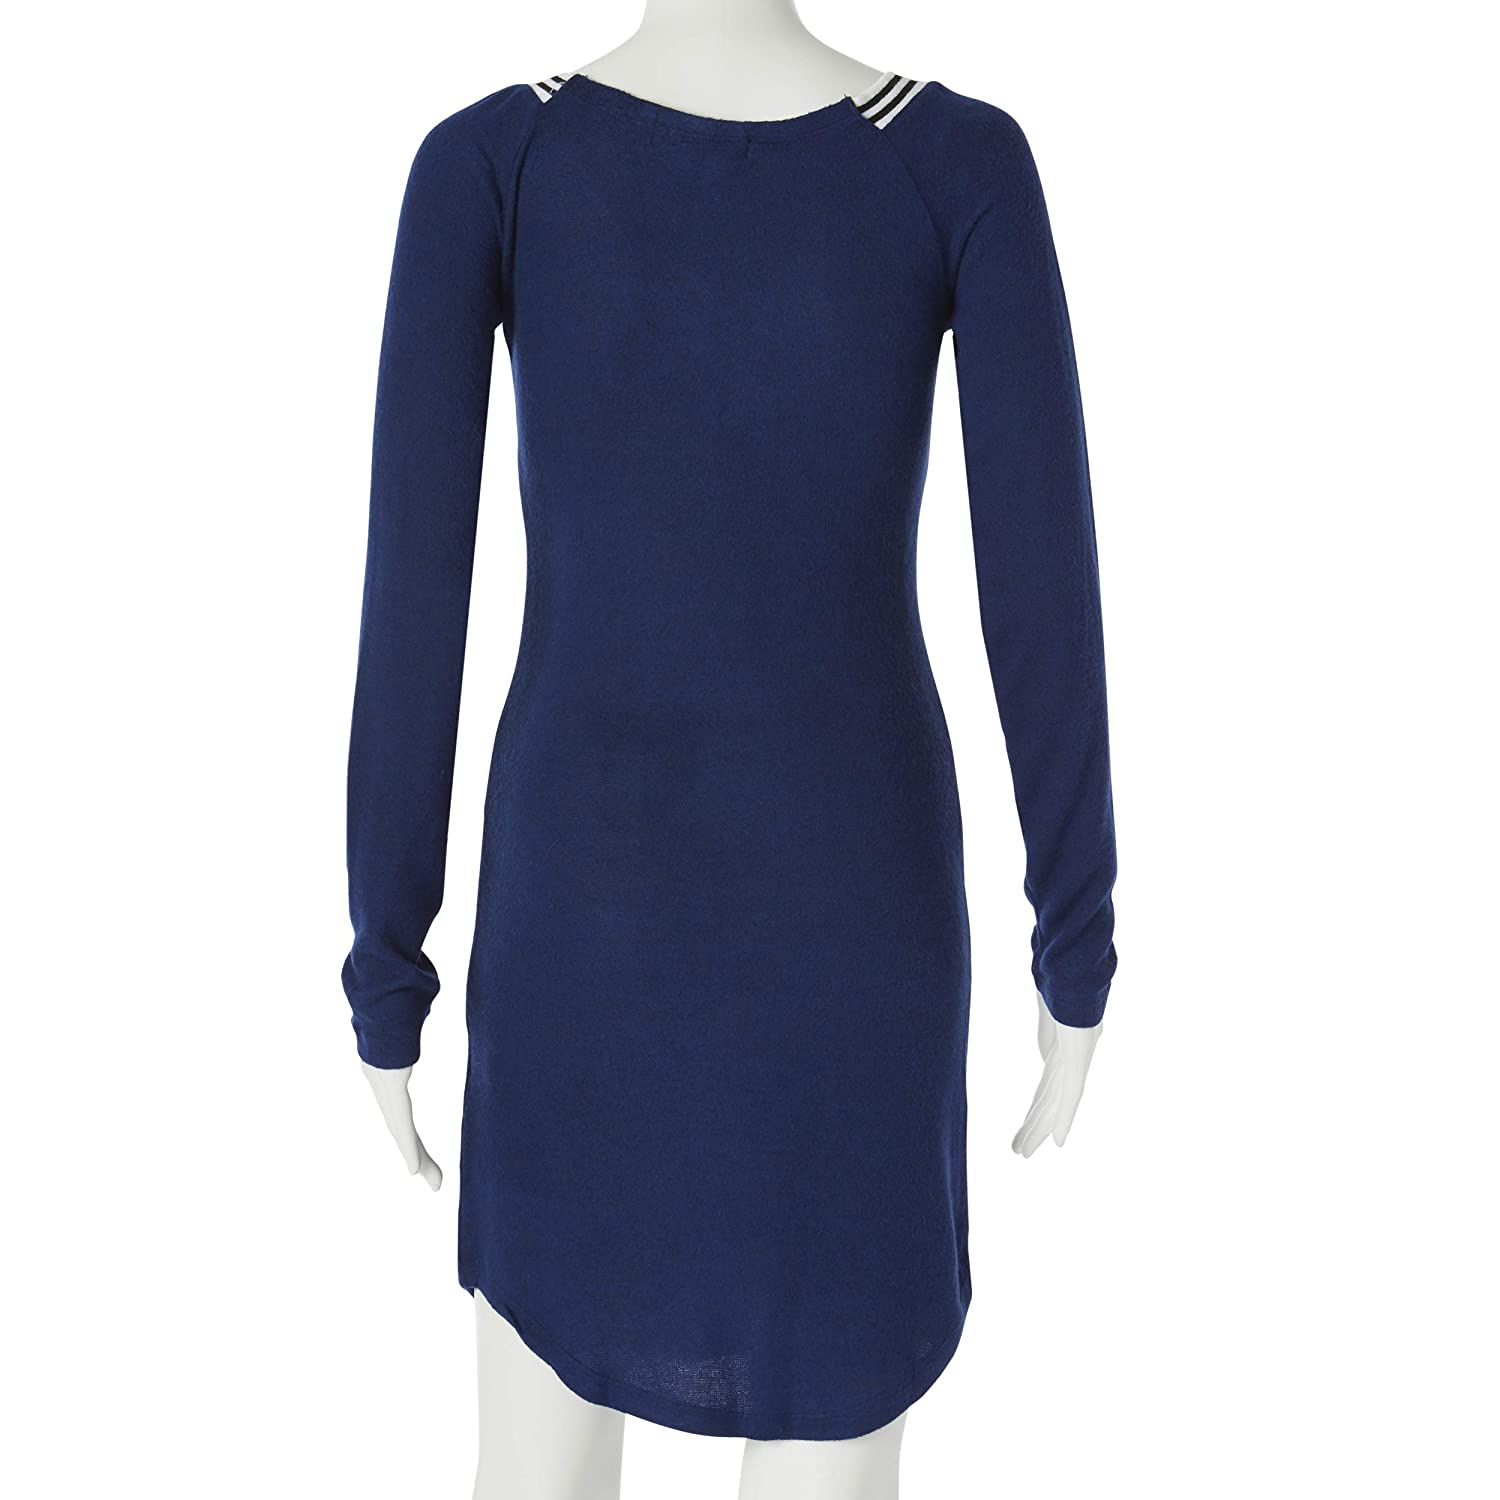 Long Sleeve Dresses for Women Casual Short Quarter Sleeve Dress